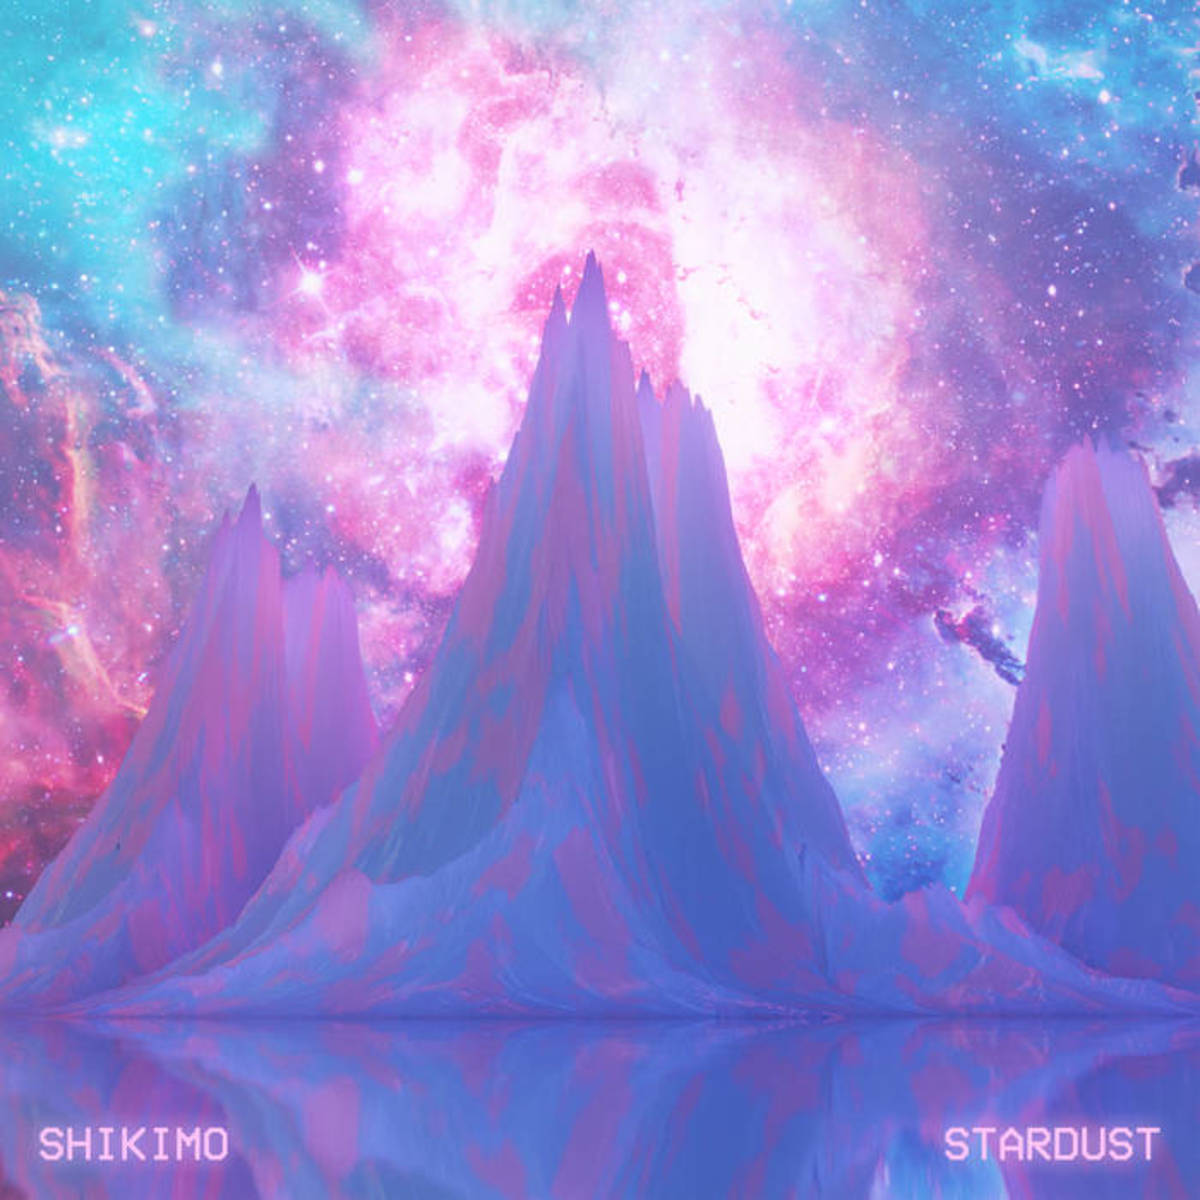 synthwave-single-review-shikimo-stardust